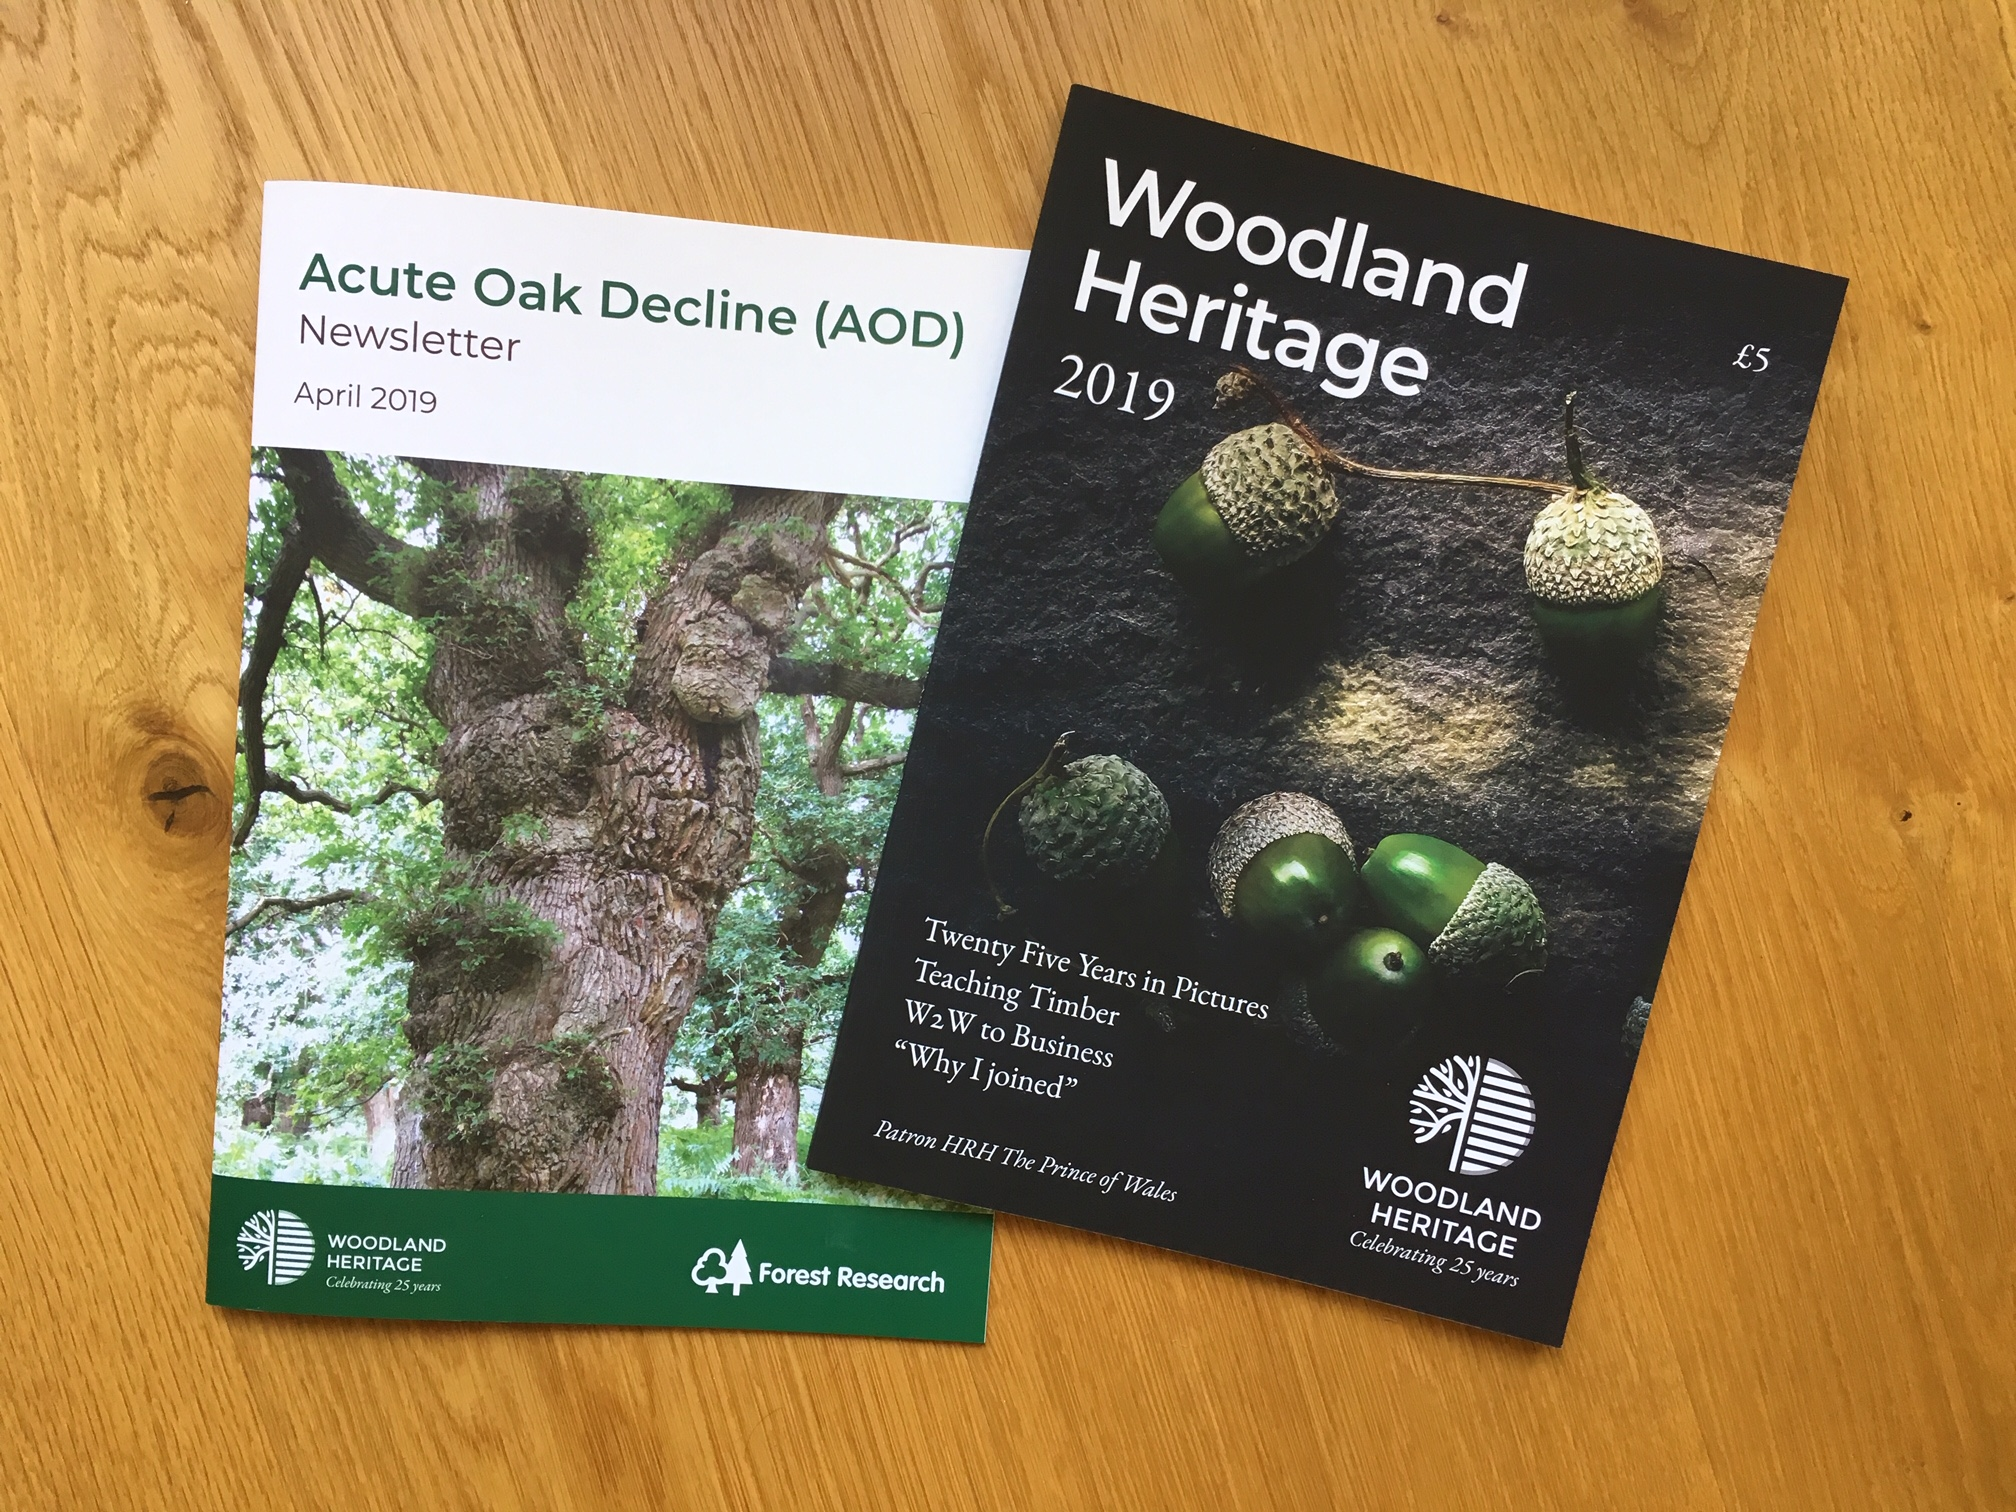 Woodland-Heritage-Journal-and-AOD-Newsletter.jpg